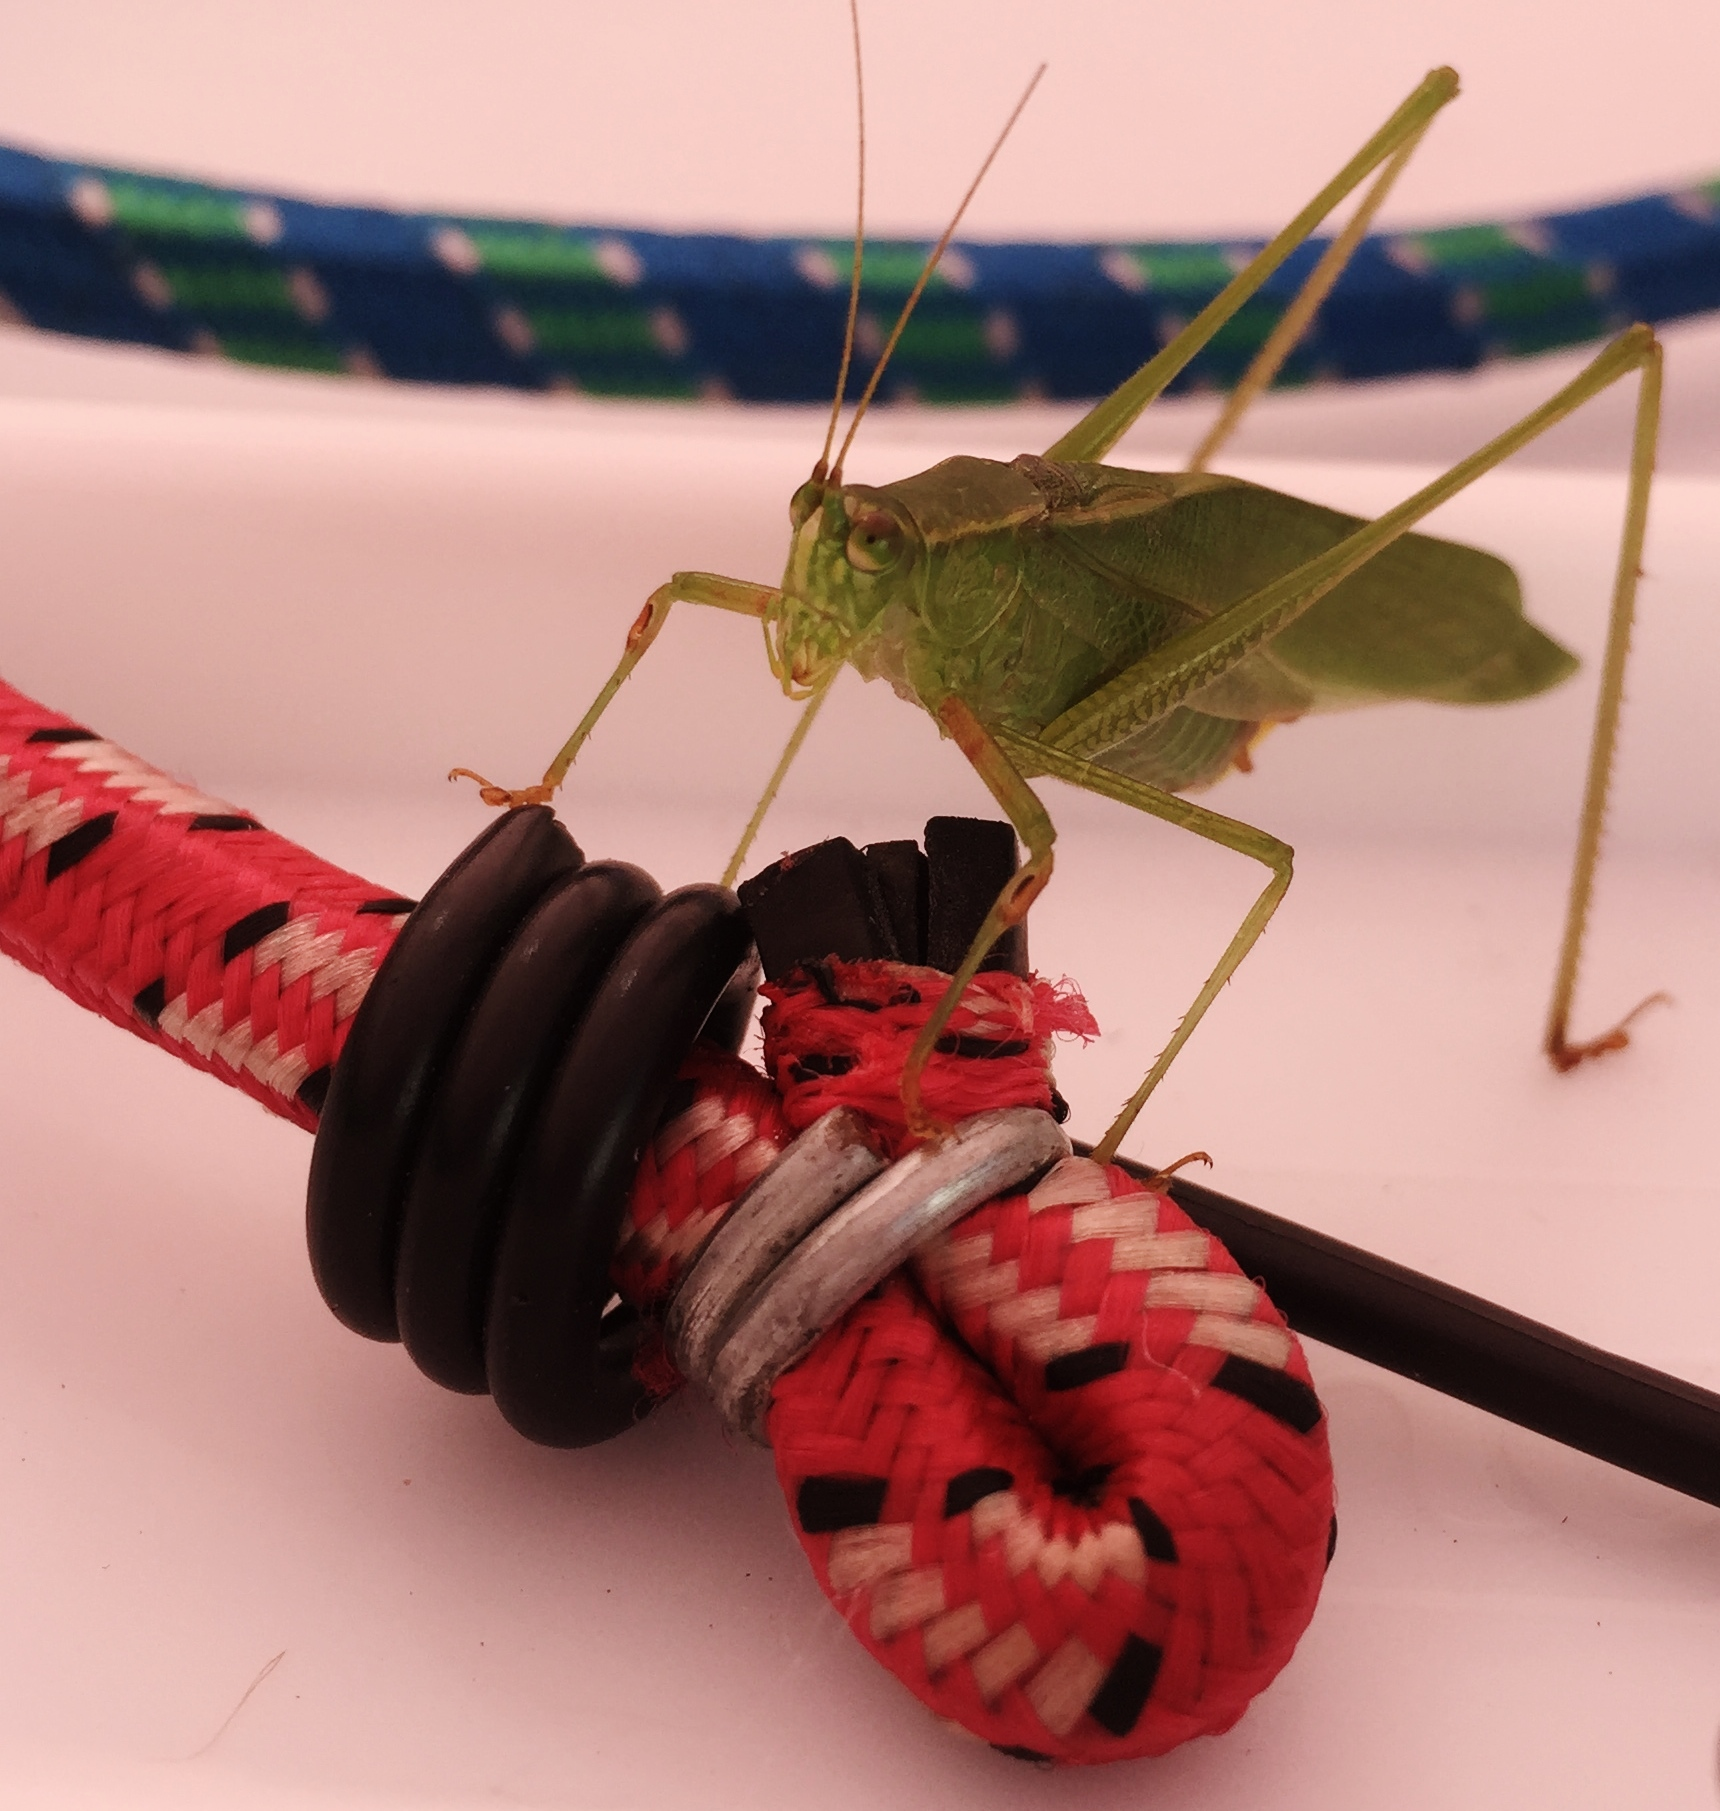 Praying mantis on bungee cord